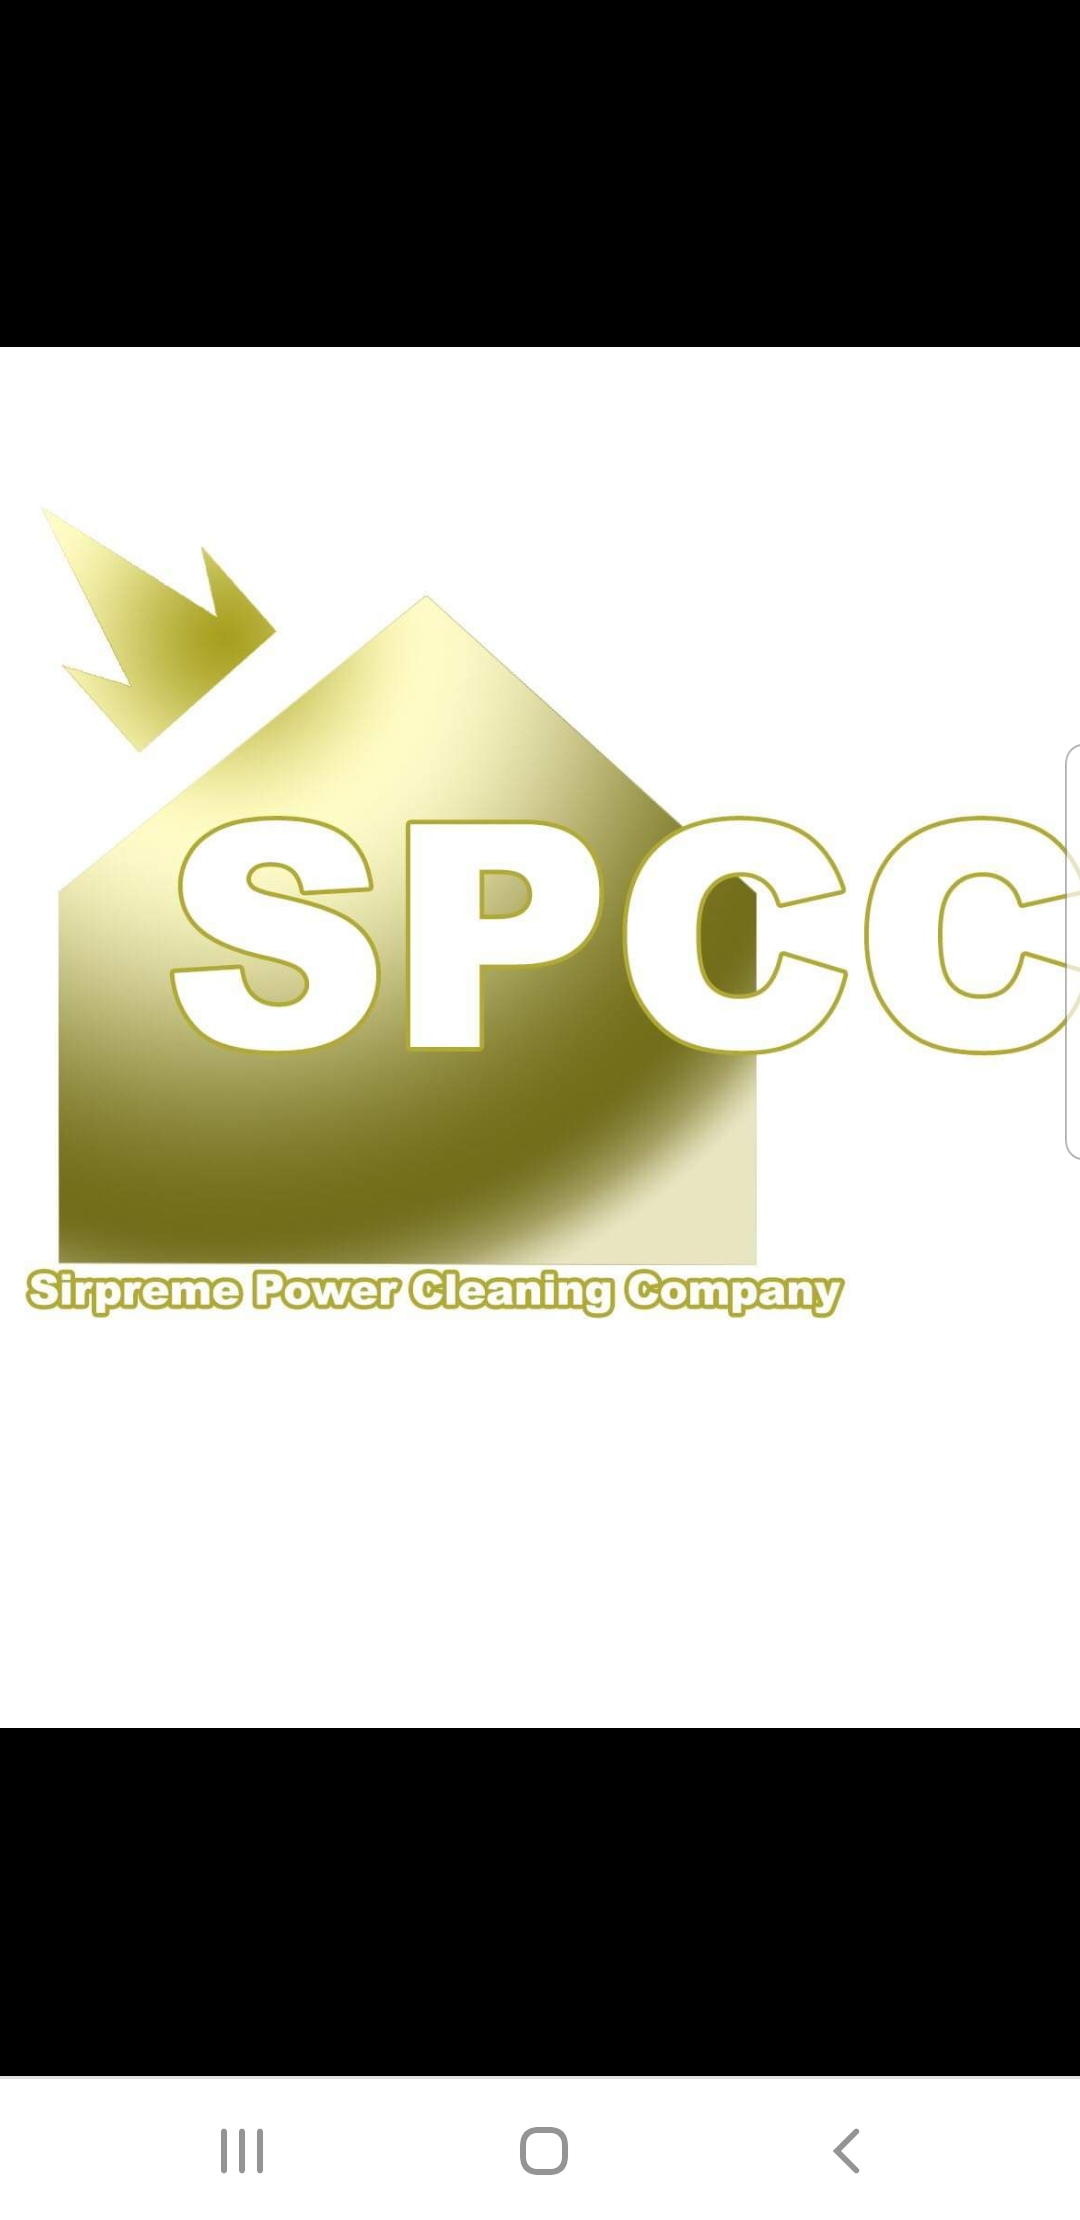 Surpreme Power Cleaning Company logo